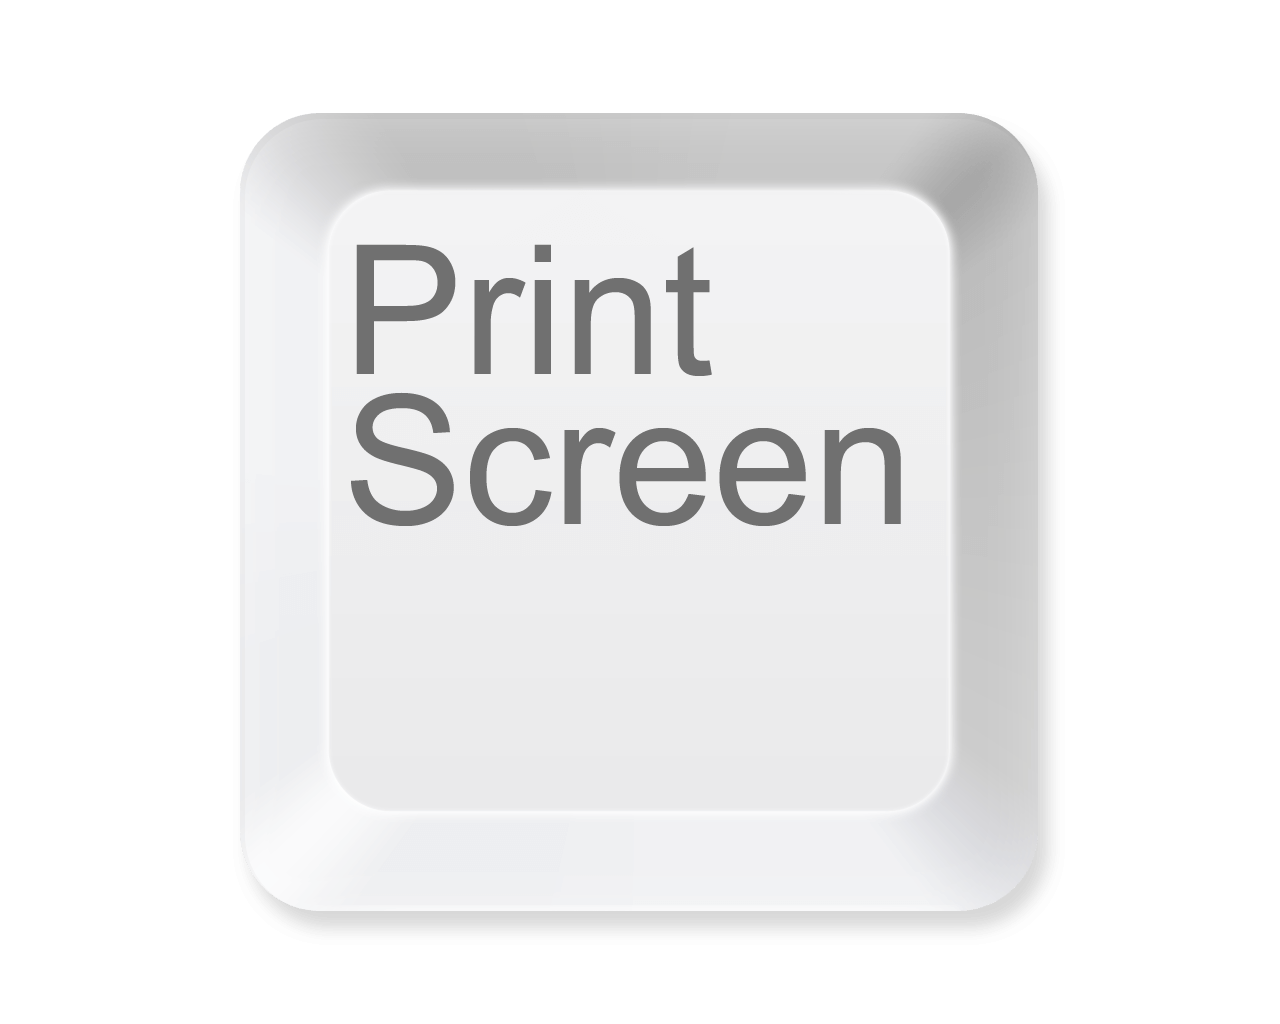 print screen - Printscreen: how to capture images in Chrome, MacOS and Windows